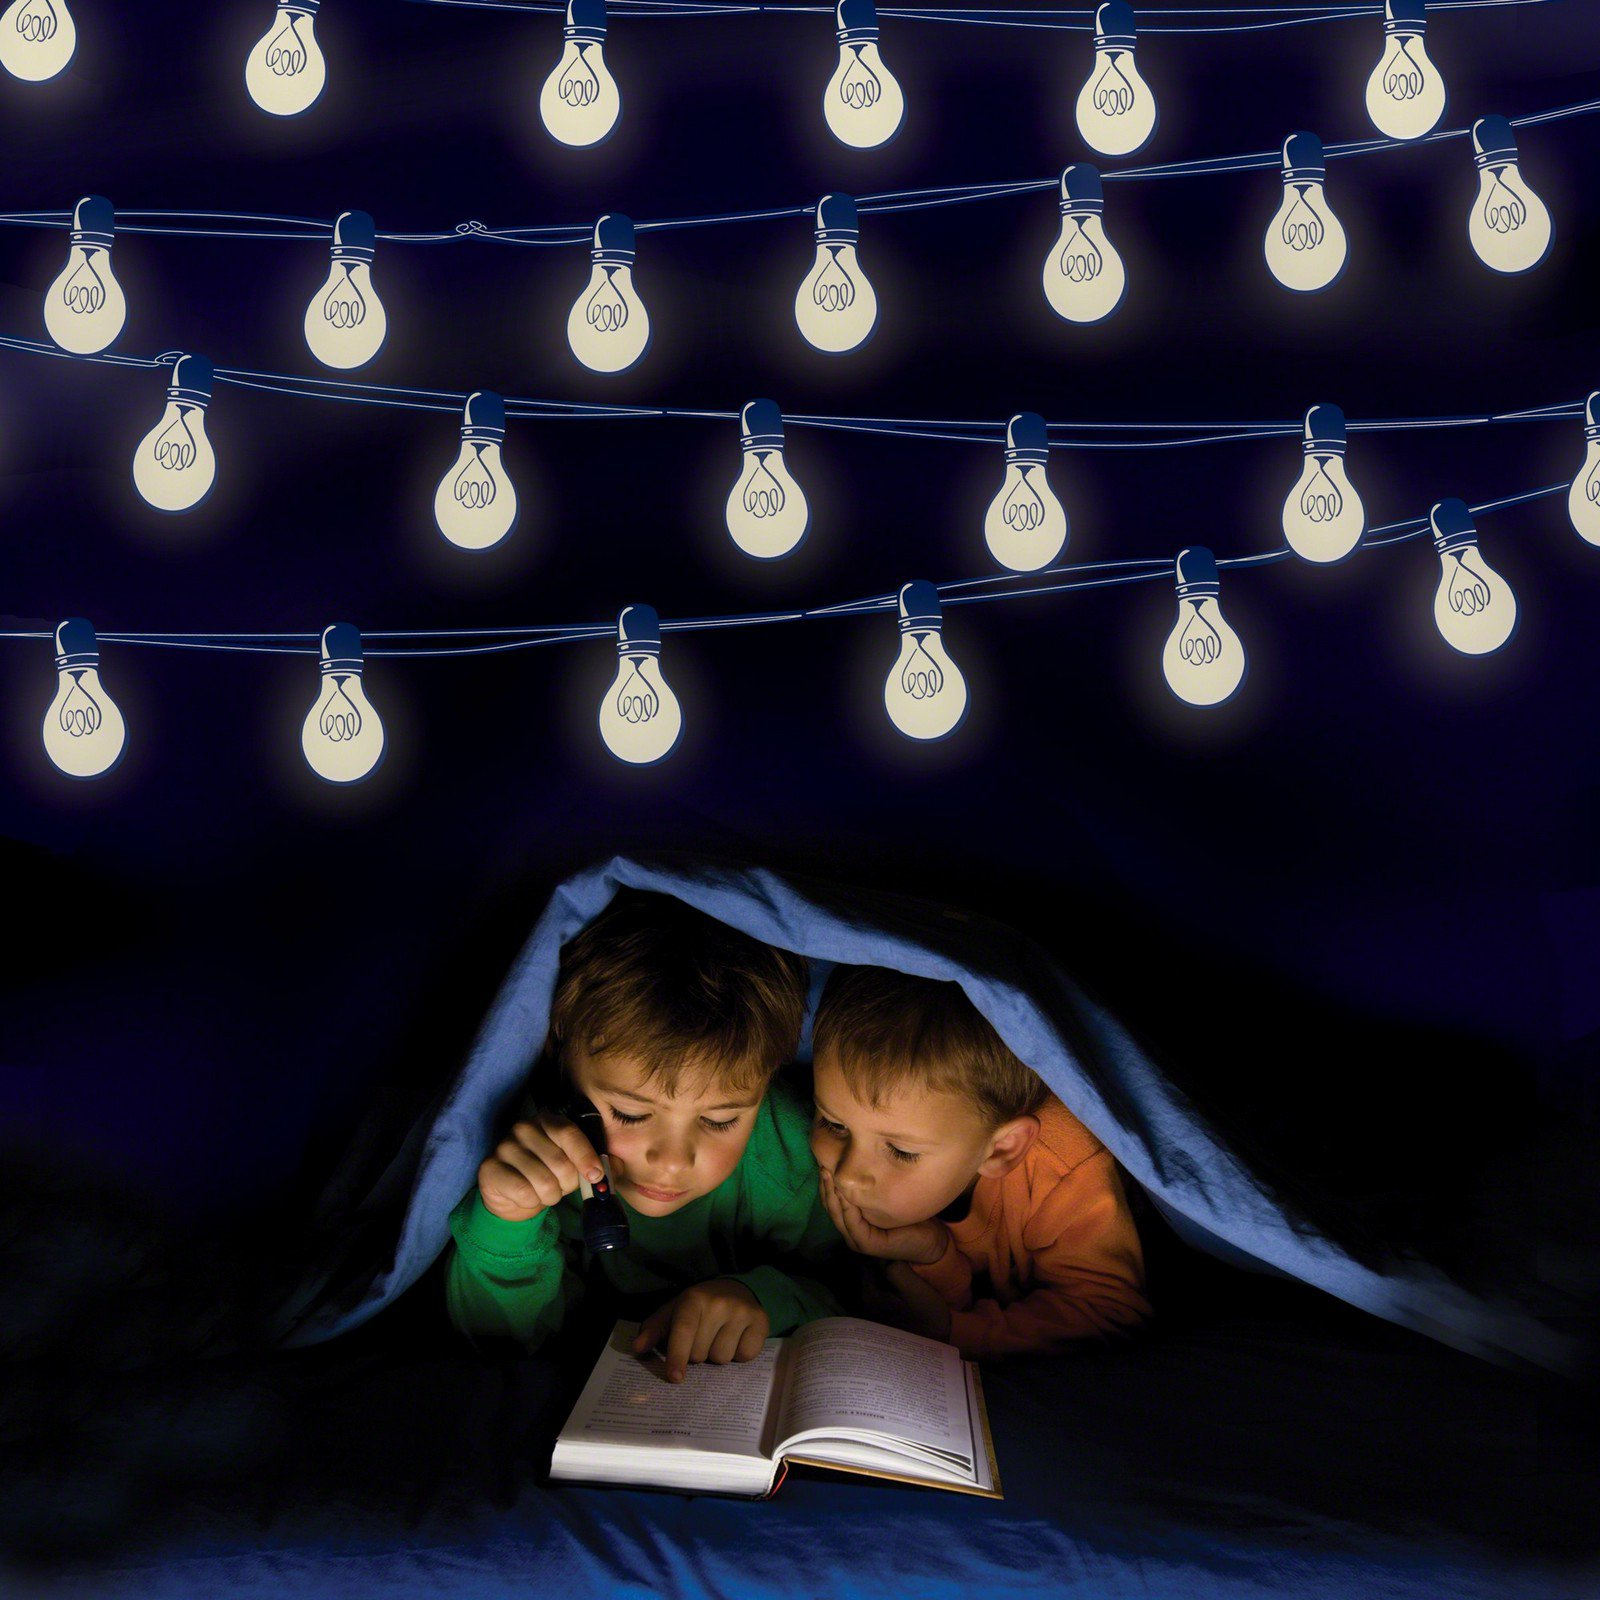 Childrens Wall Night Lights Night Lights Wall Decals